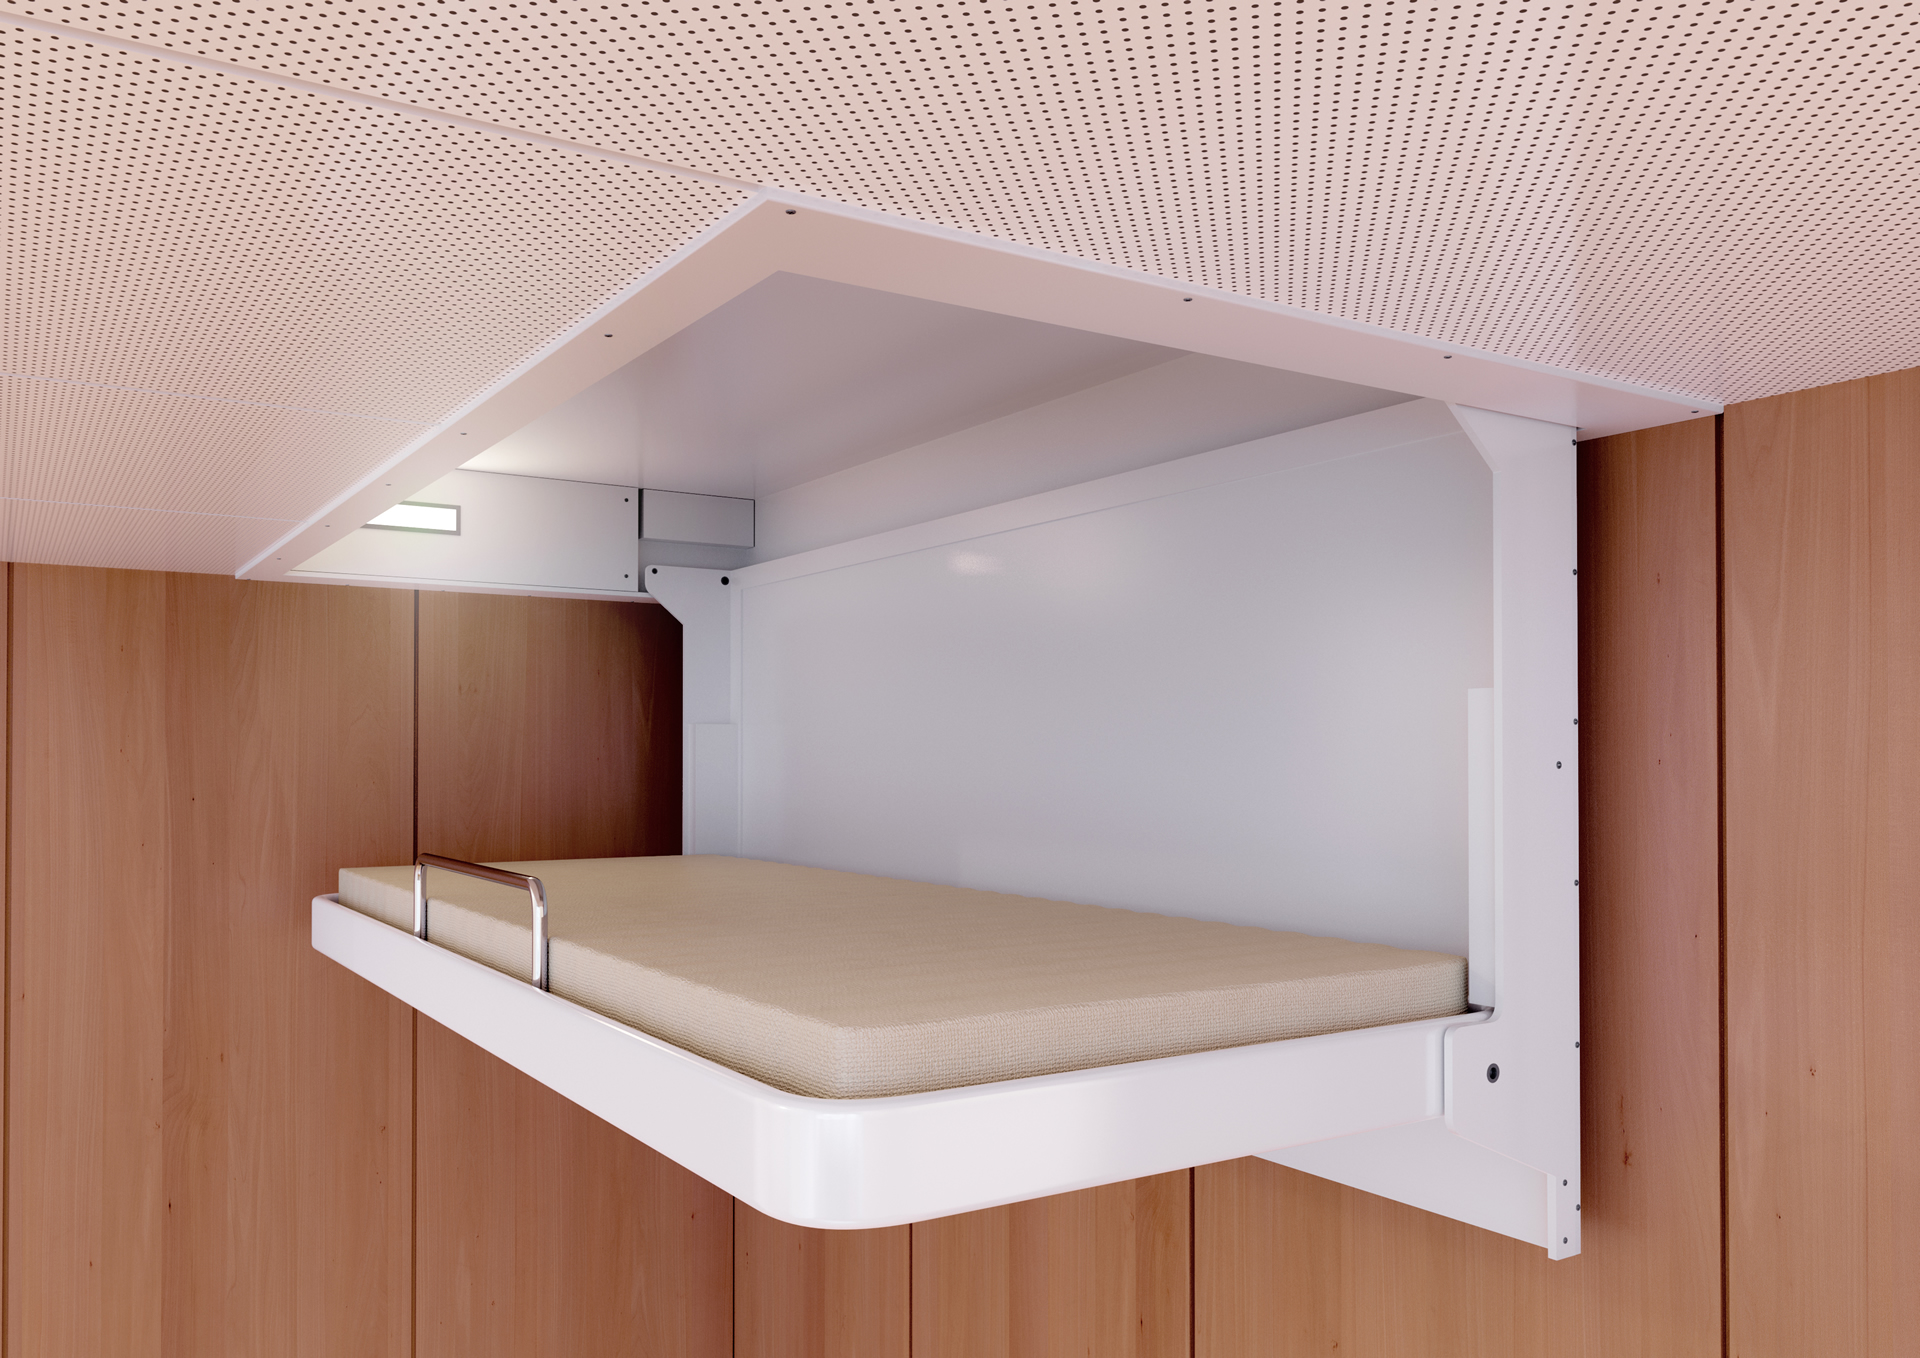 Ceiling Beds Banco Pullman Beds